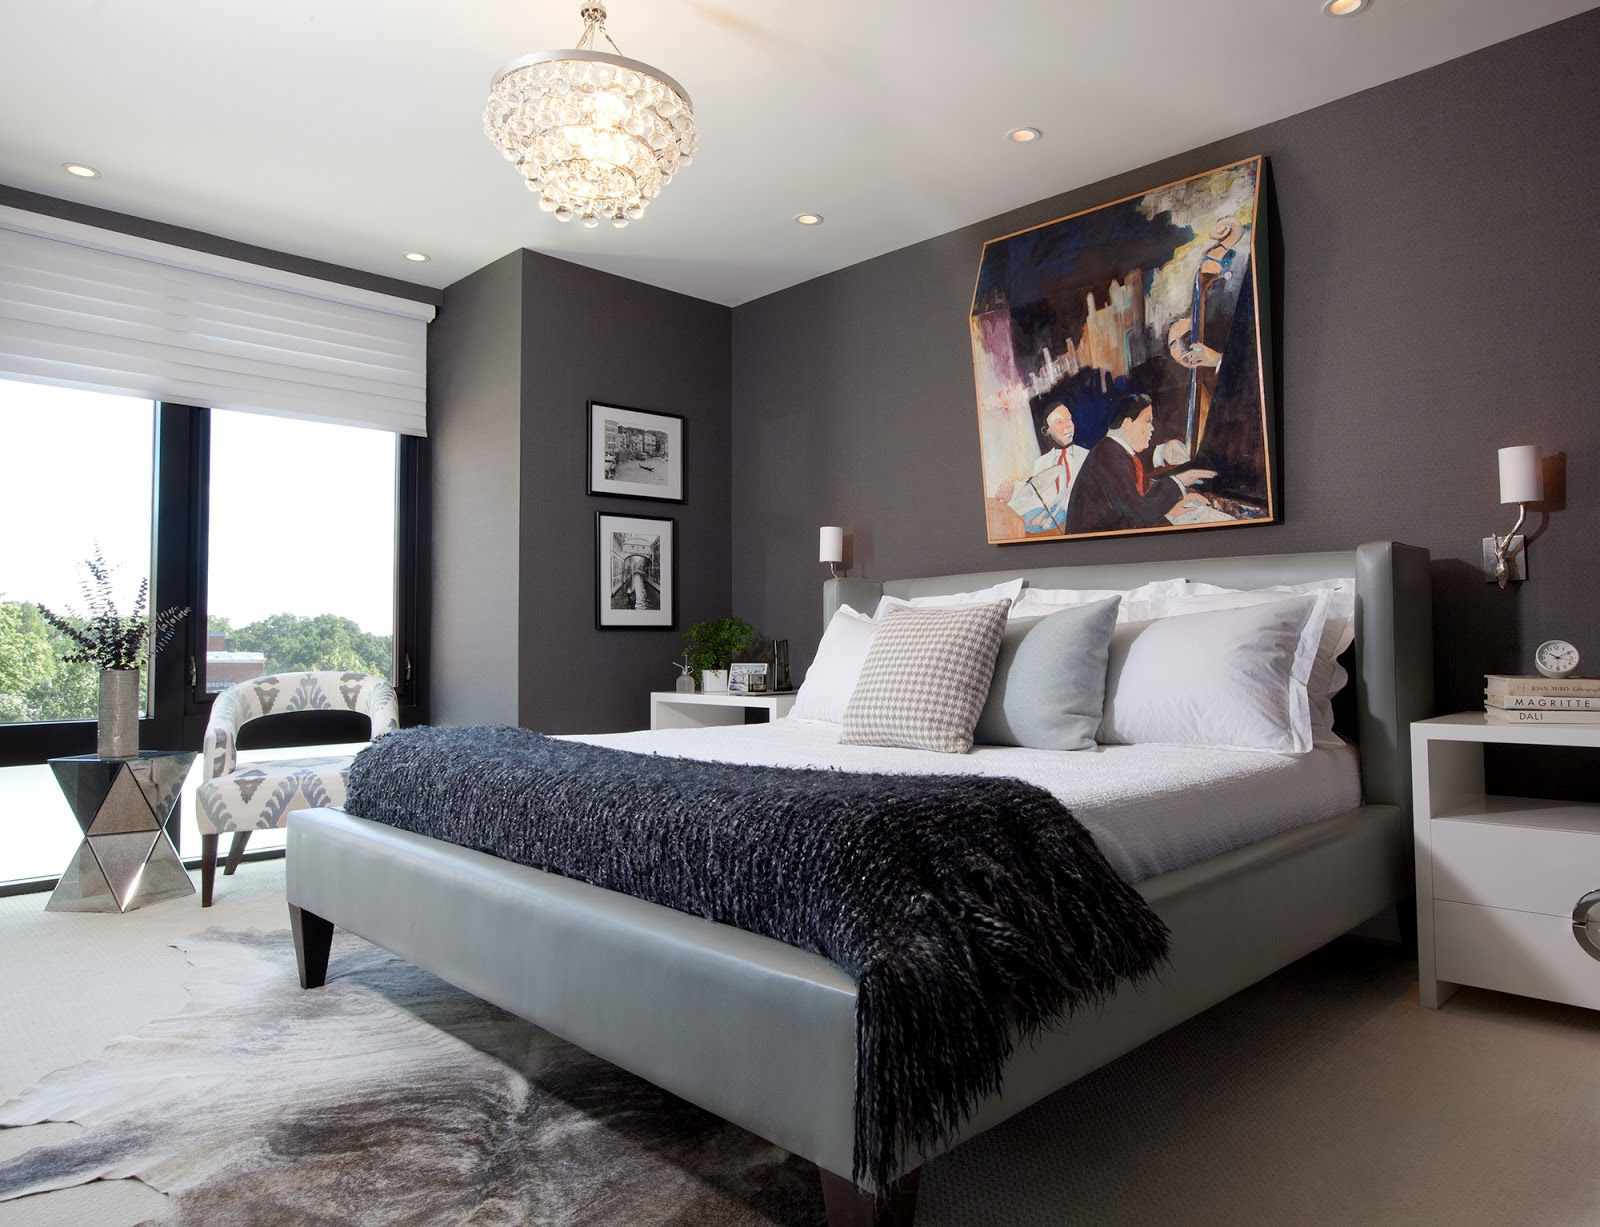 luxury bedroom ideas. Top 50 Luxury Master Bedroom Designs  part 2 The 25 best master bedroom ideas on Pinterest Modern